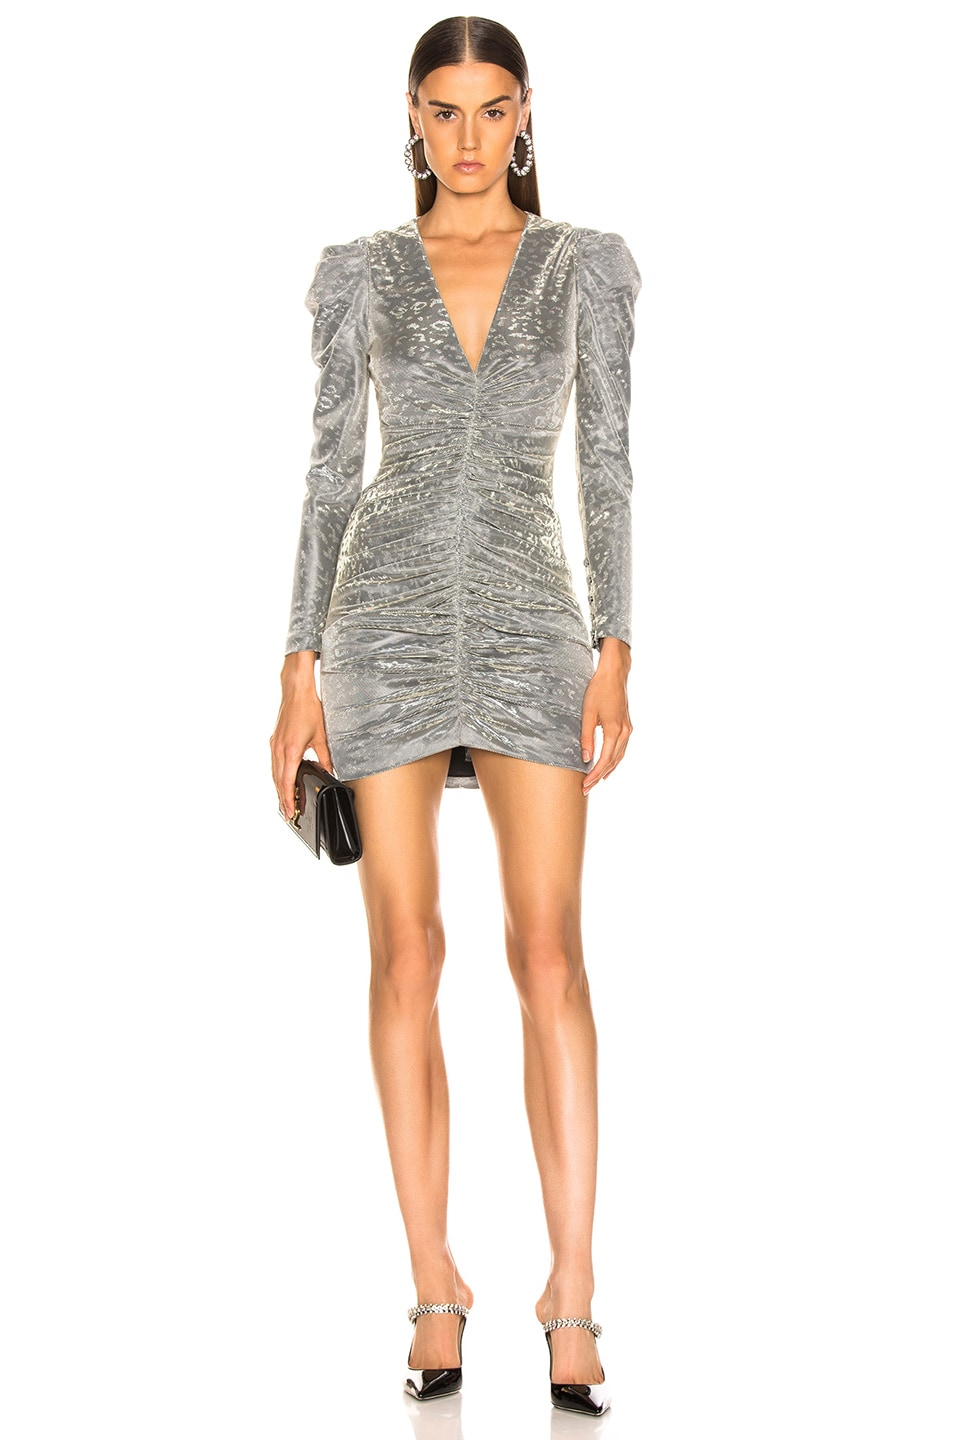 Image 1 of JONATHAN SIMKHAI for FWRD Long Sleeve Metallic Leopard Mini Dress in Silver